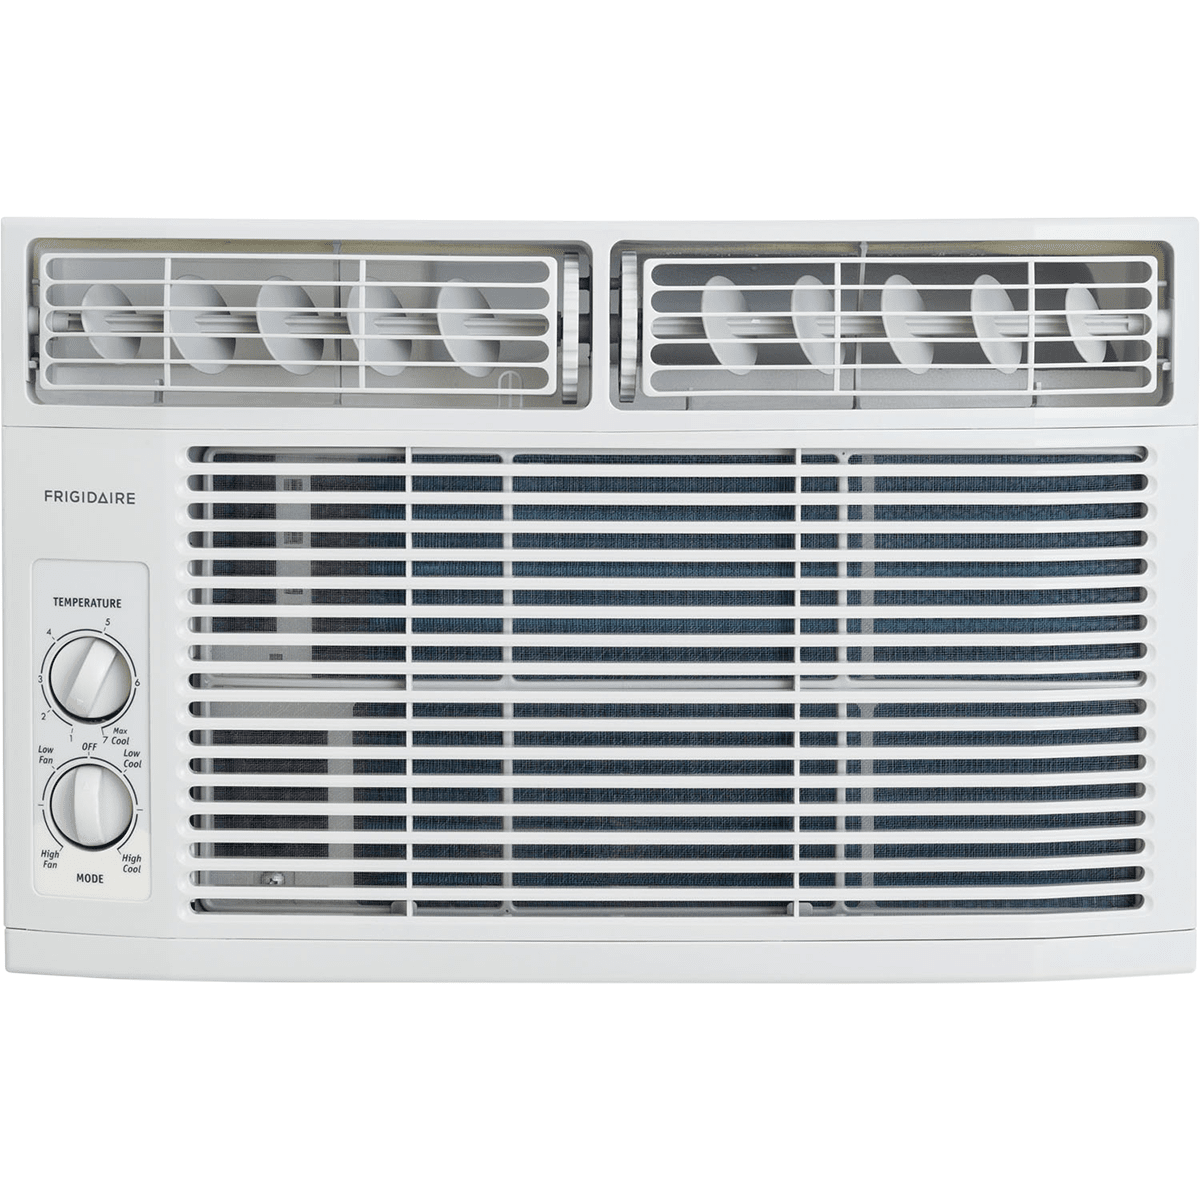 Frigidaire FFRA0811R1 115 V 8,000 BTU Window Air Conditioner